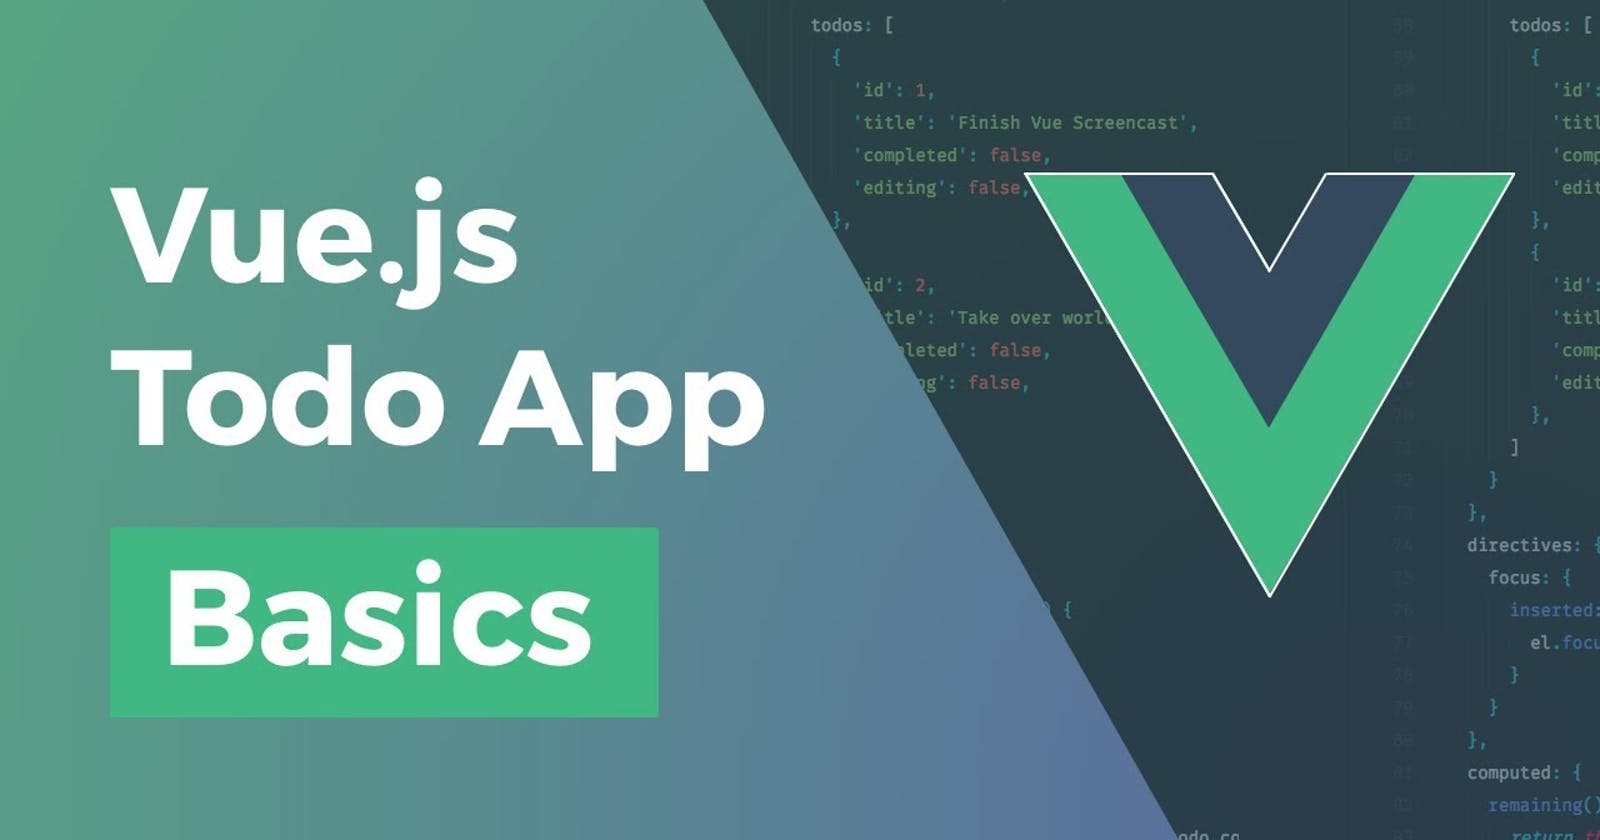 Making a simple TODO single page web app using VueJS.